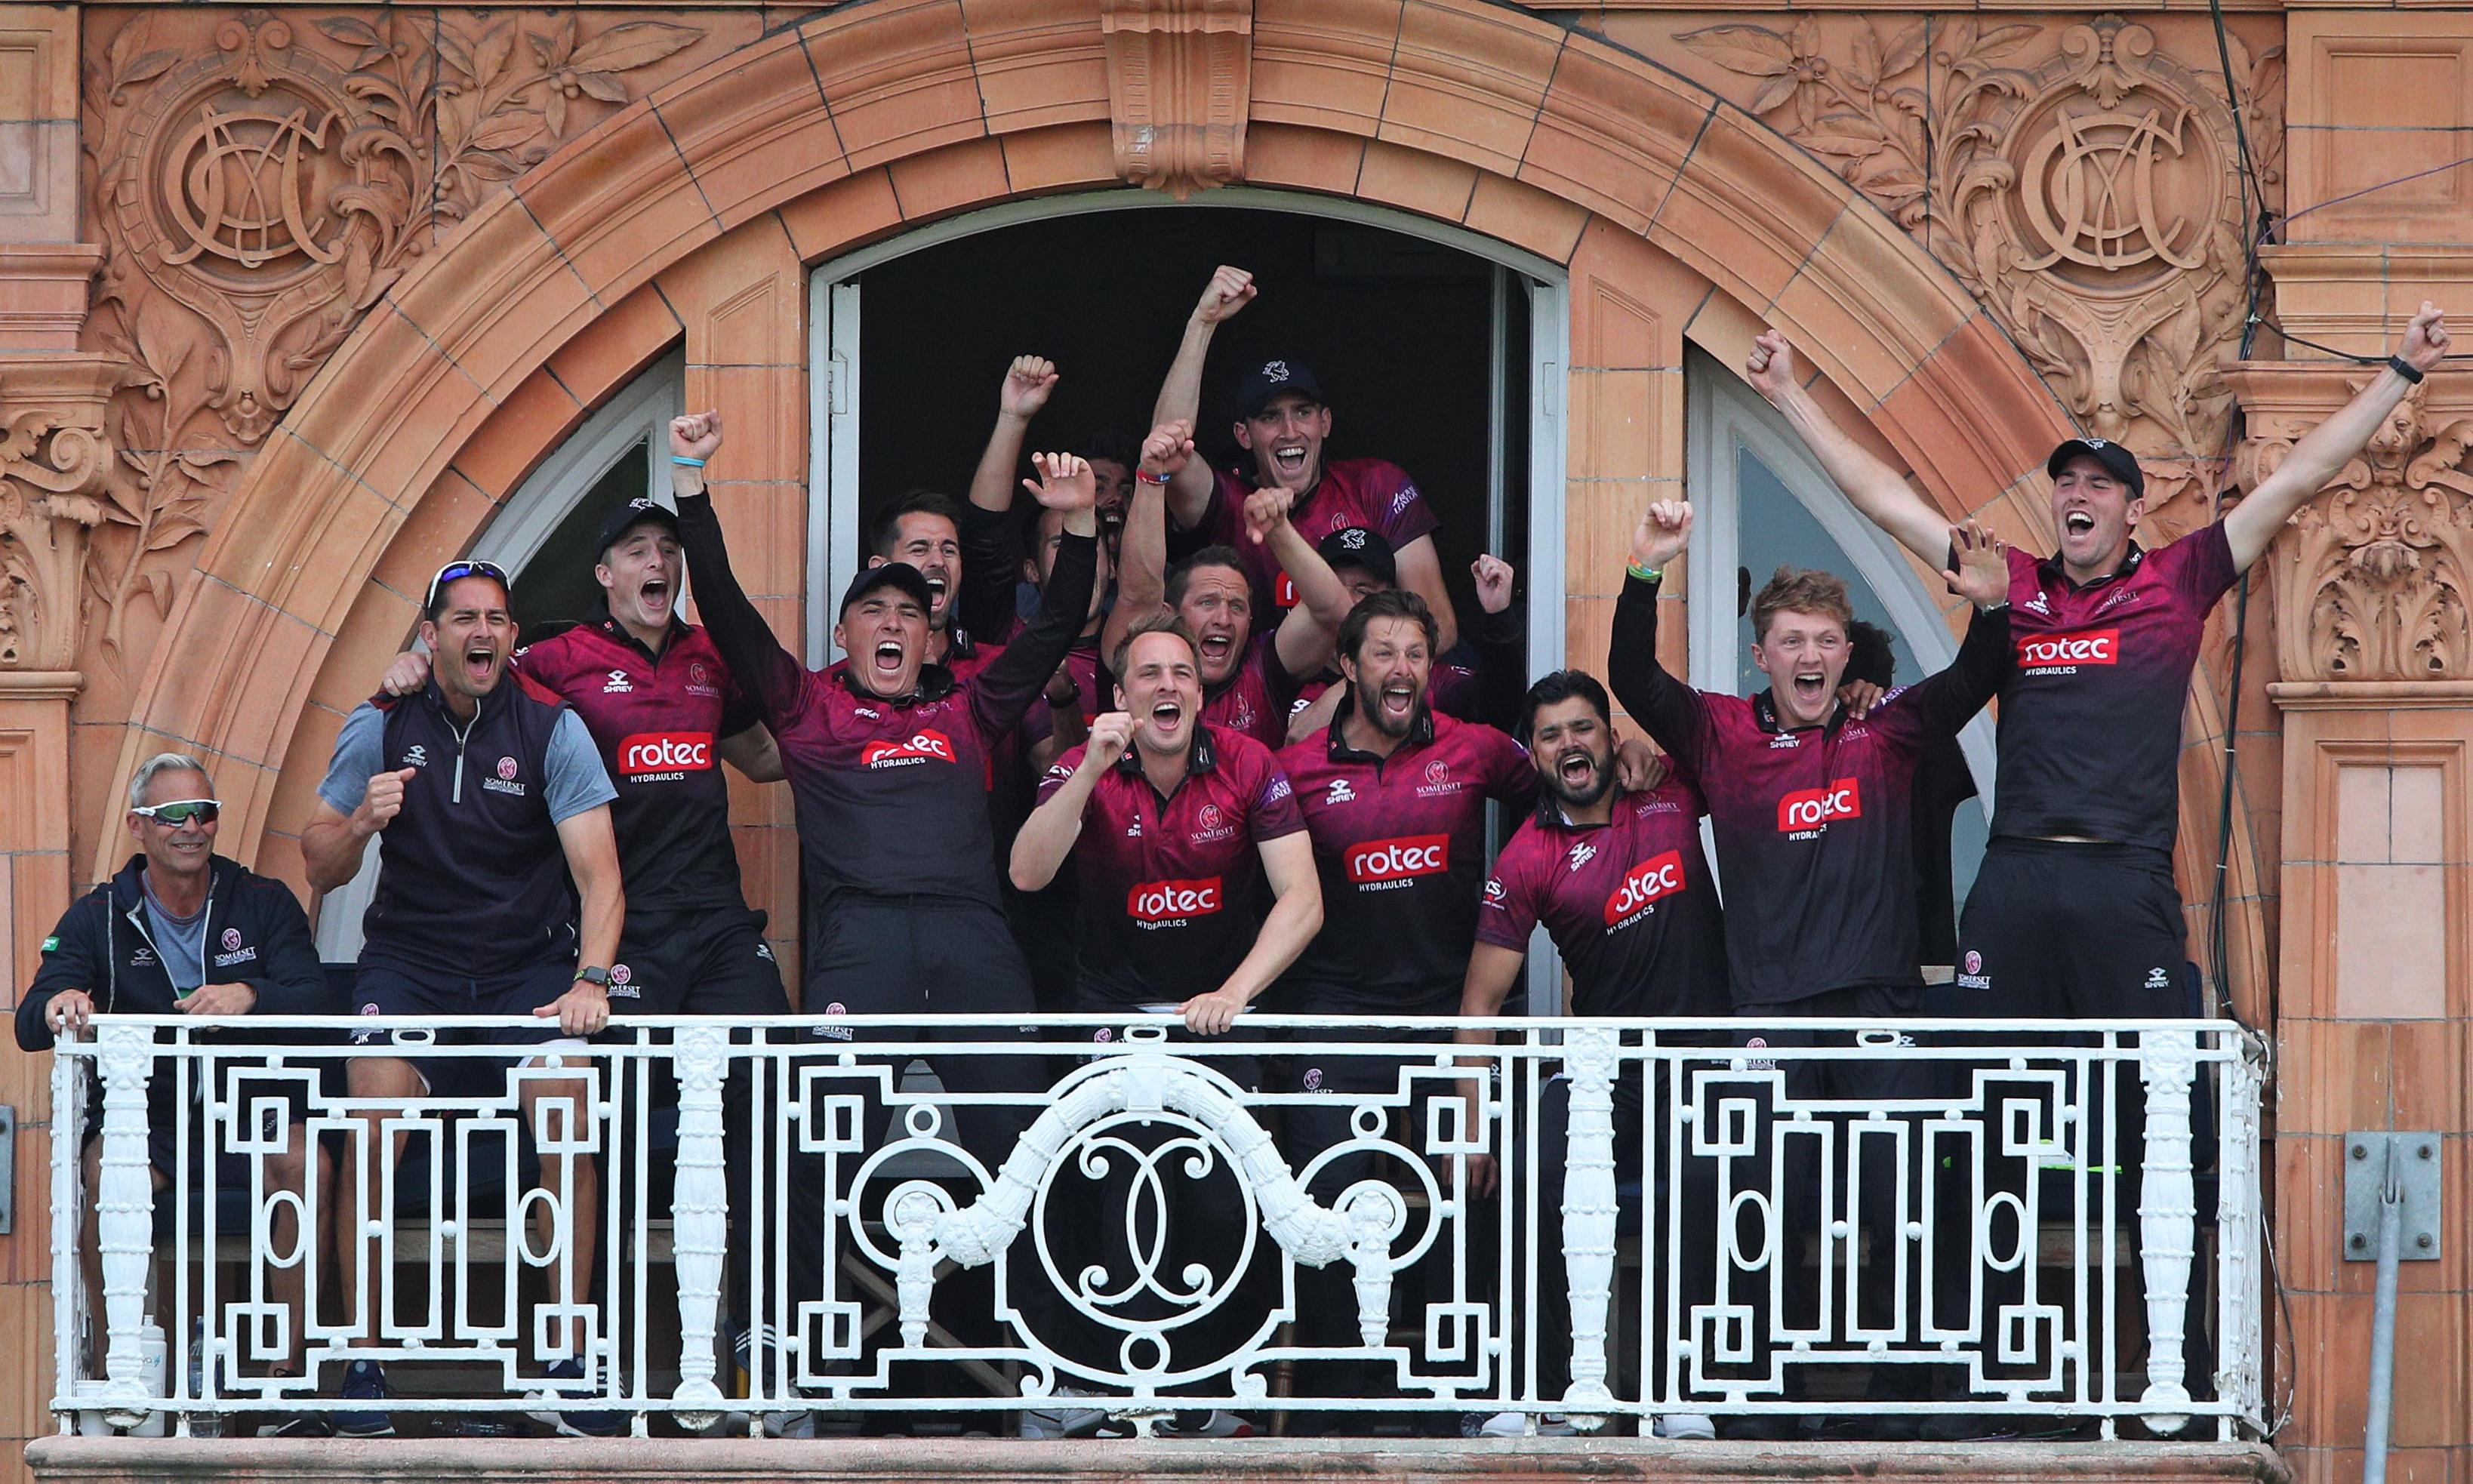 County cricket talking points: Somerset win another trophy at last